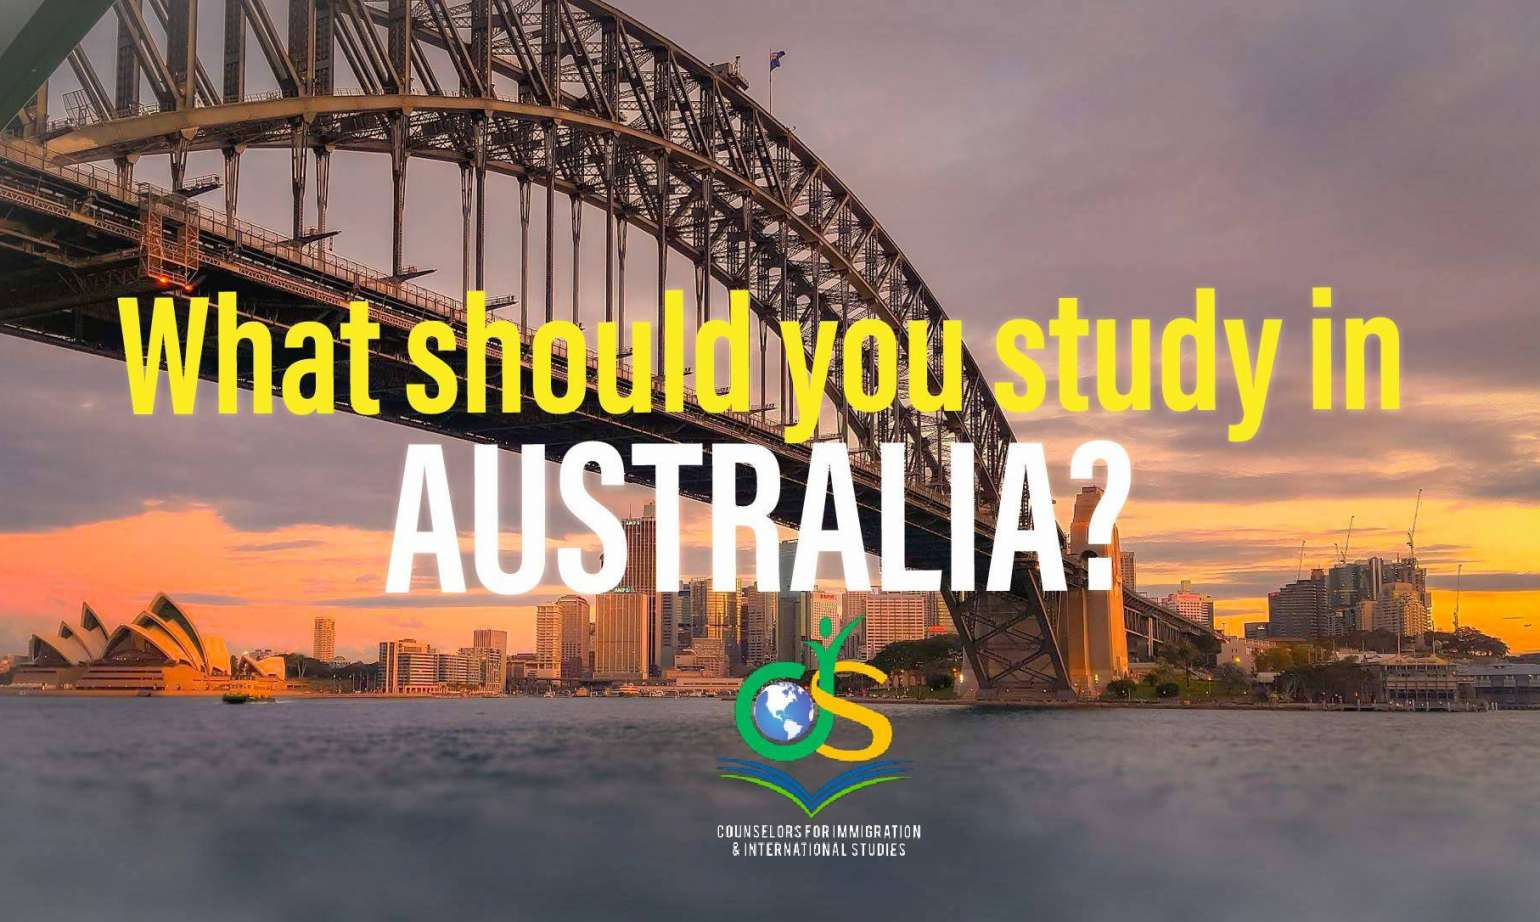 What should you study in Australia?